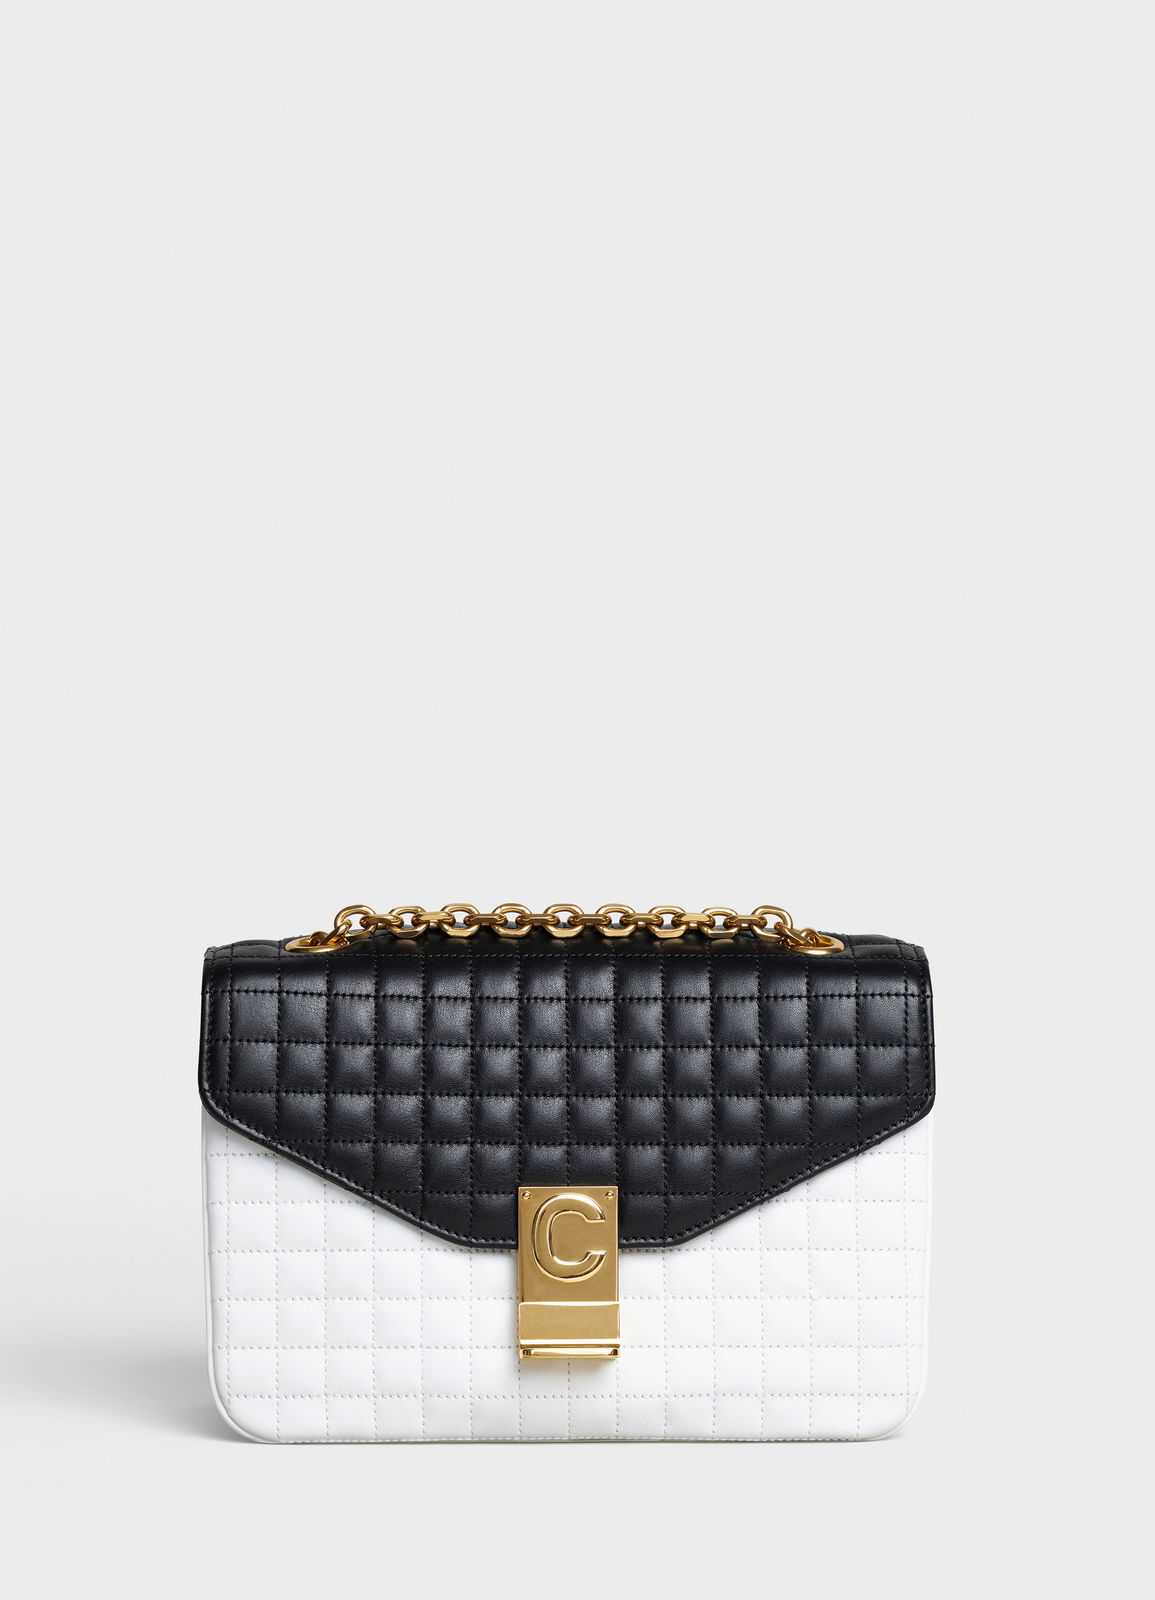 CELINE MEDIUM C BAG IN BICOLOUR QUILTED CALFSKIN CL87253 white&black